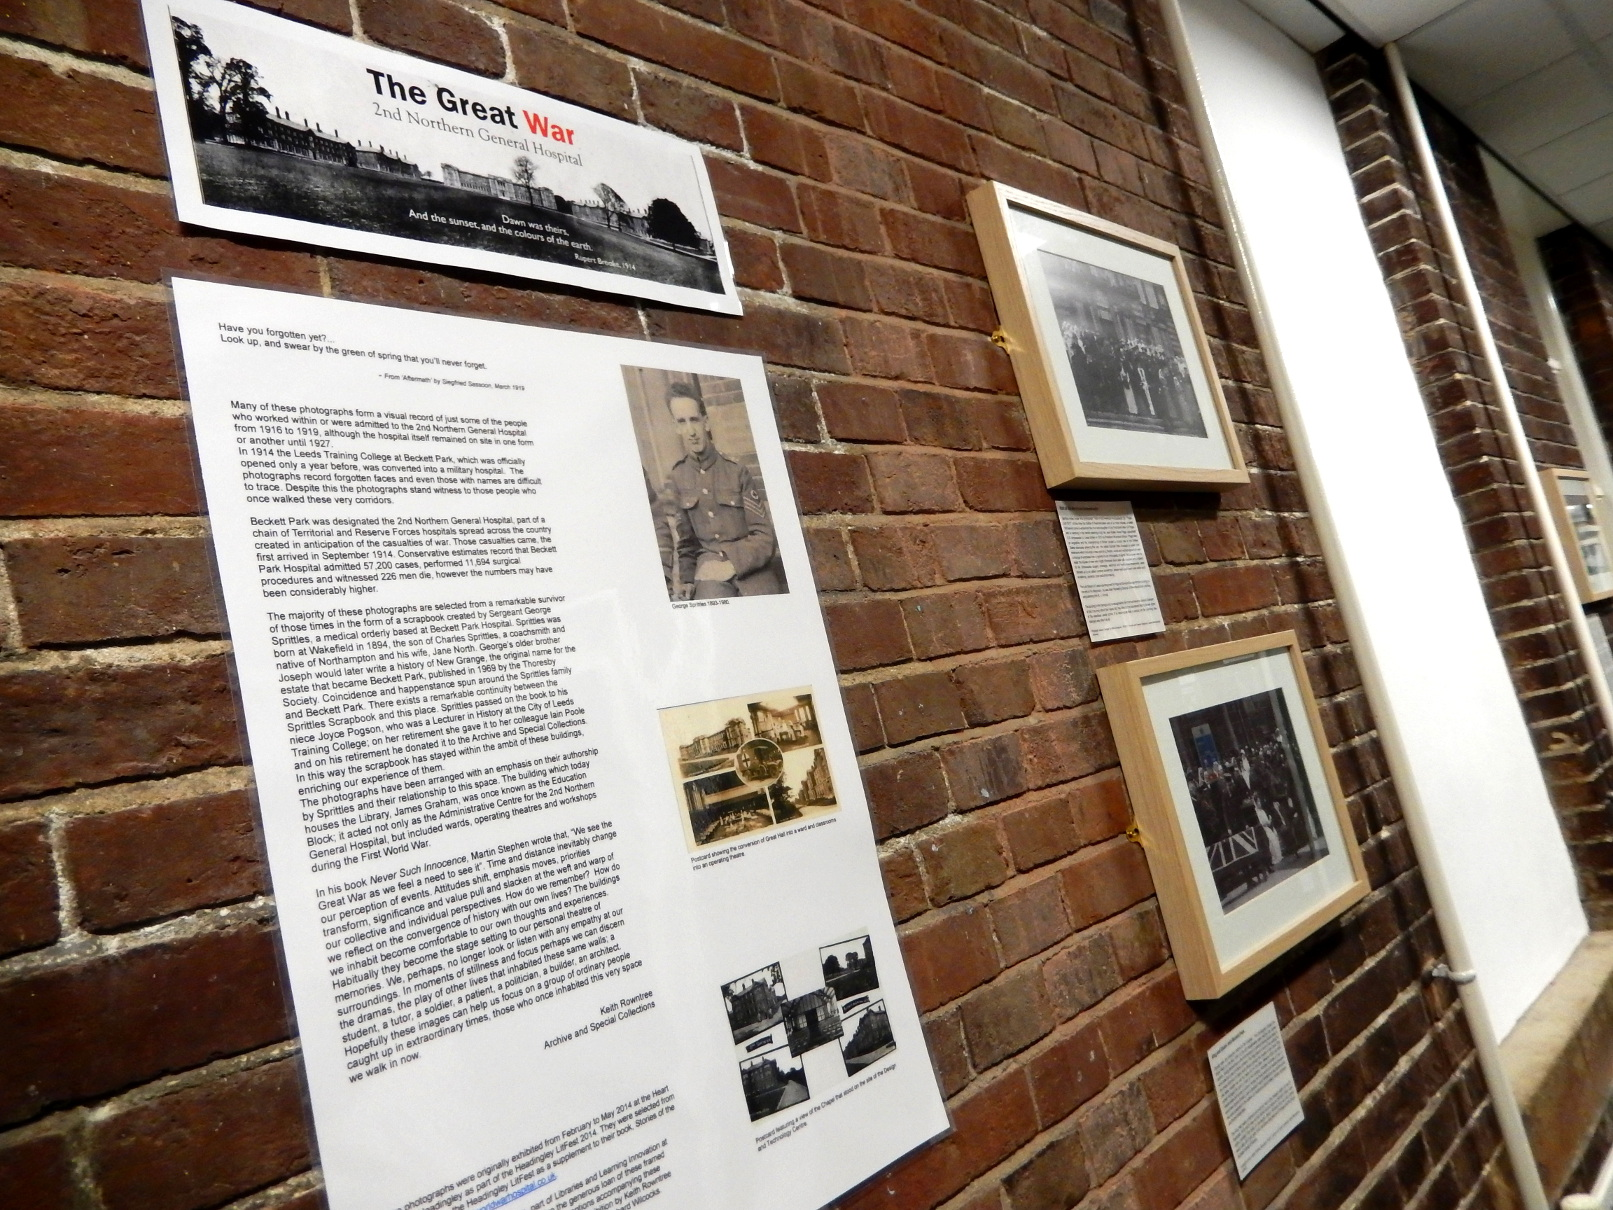 The WW1 exhibition at the Headingley Campus Library on the first floor